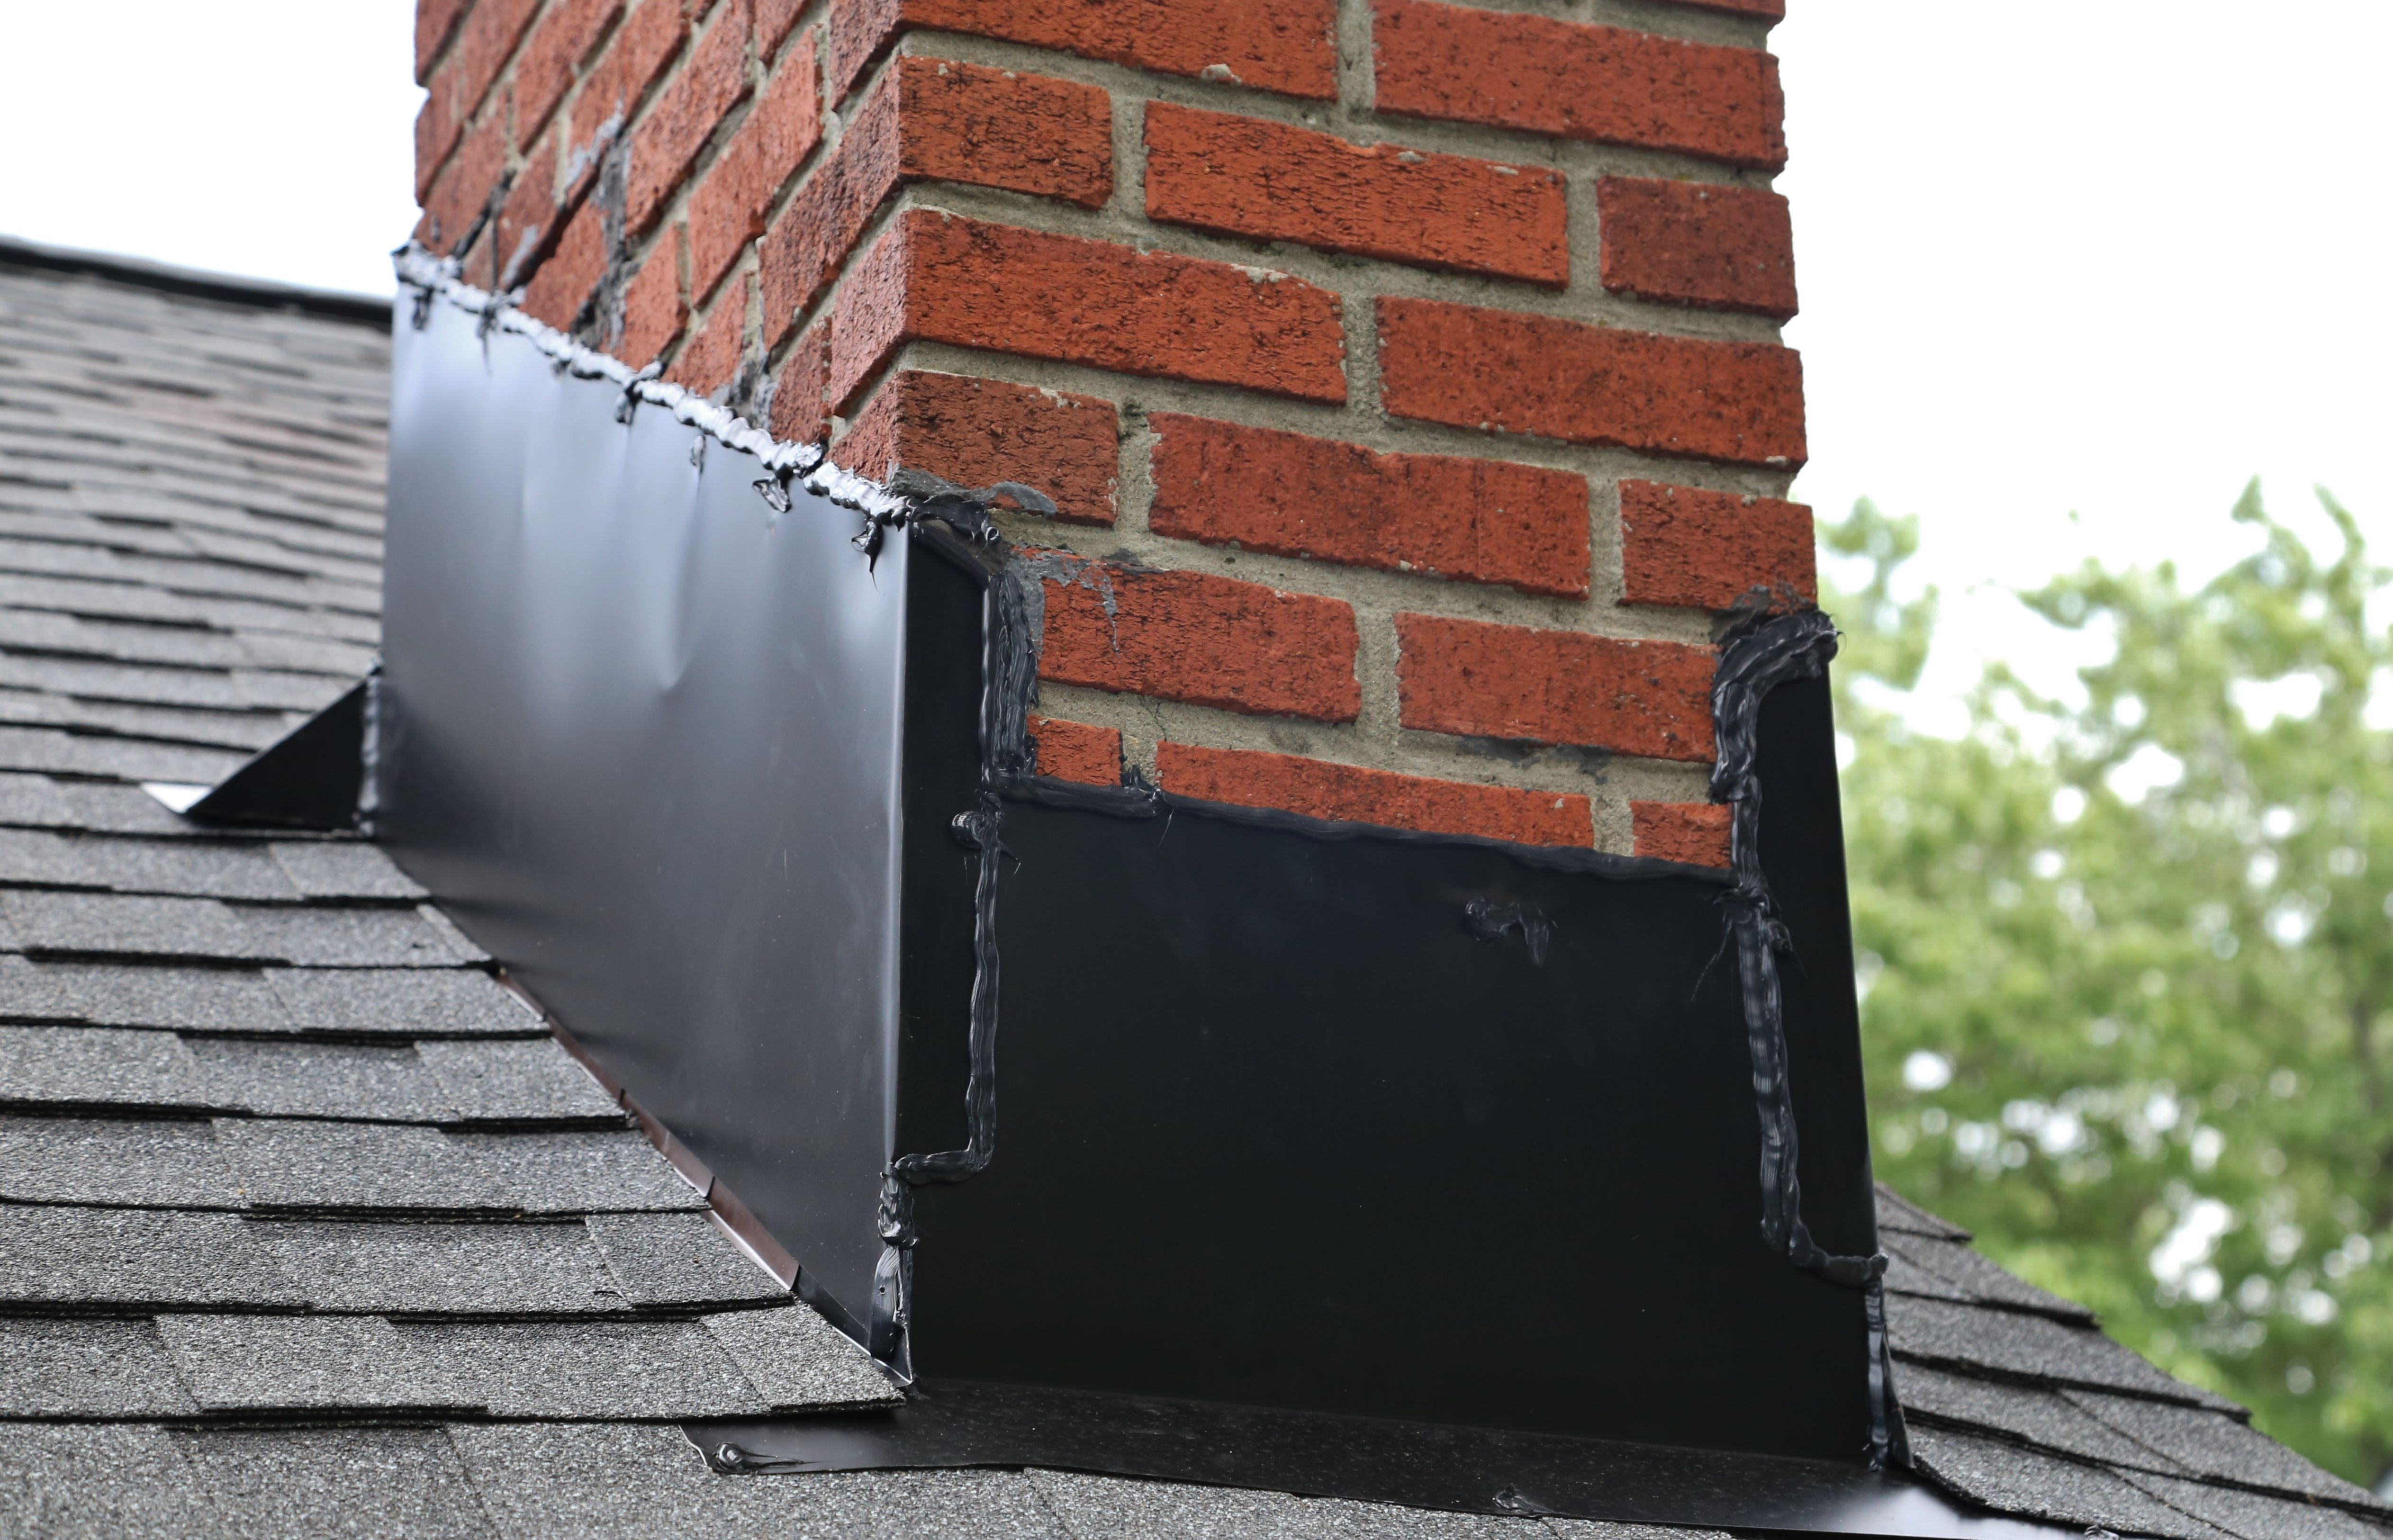 How Roof Slope Affects Your Choice Of Roofing Materials Roofing Materials Roofing Pitched Roof